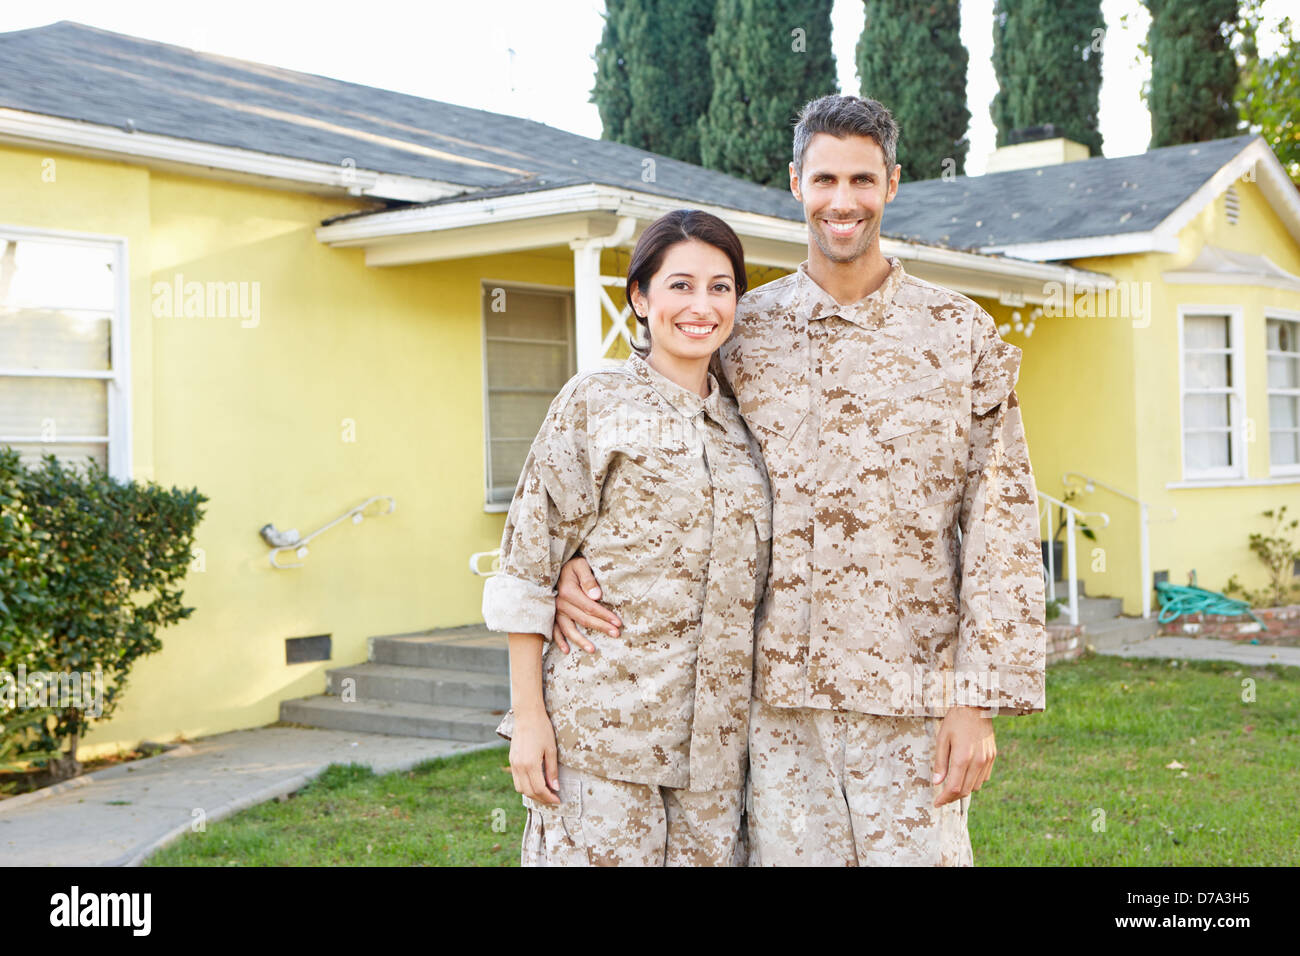 Military Couple In Uniform Standing Outside House - Stock Image